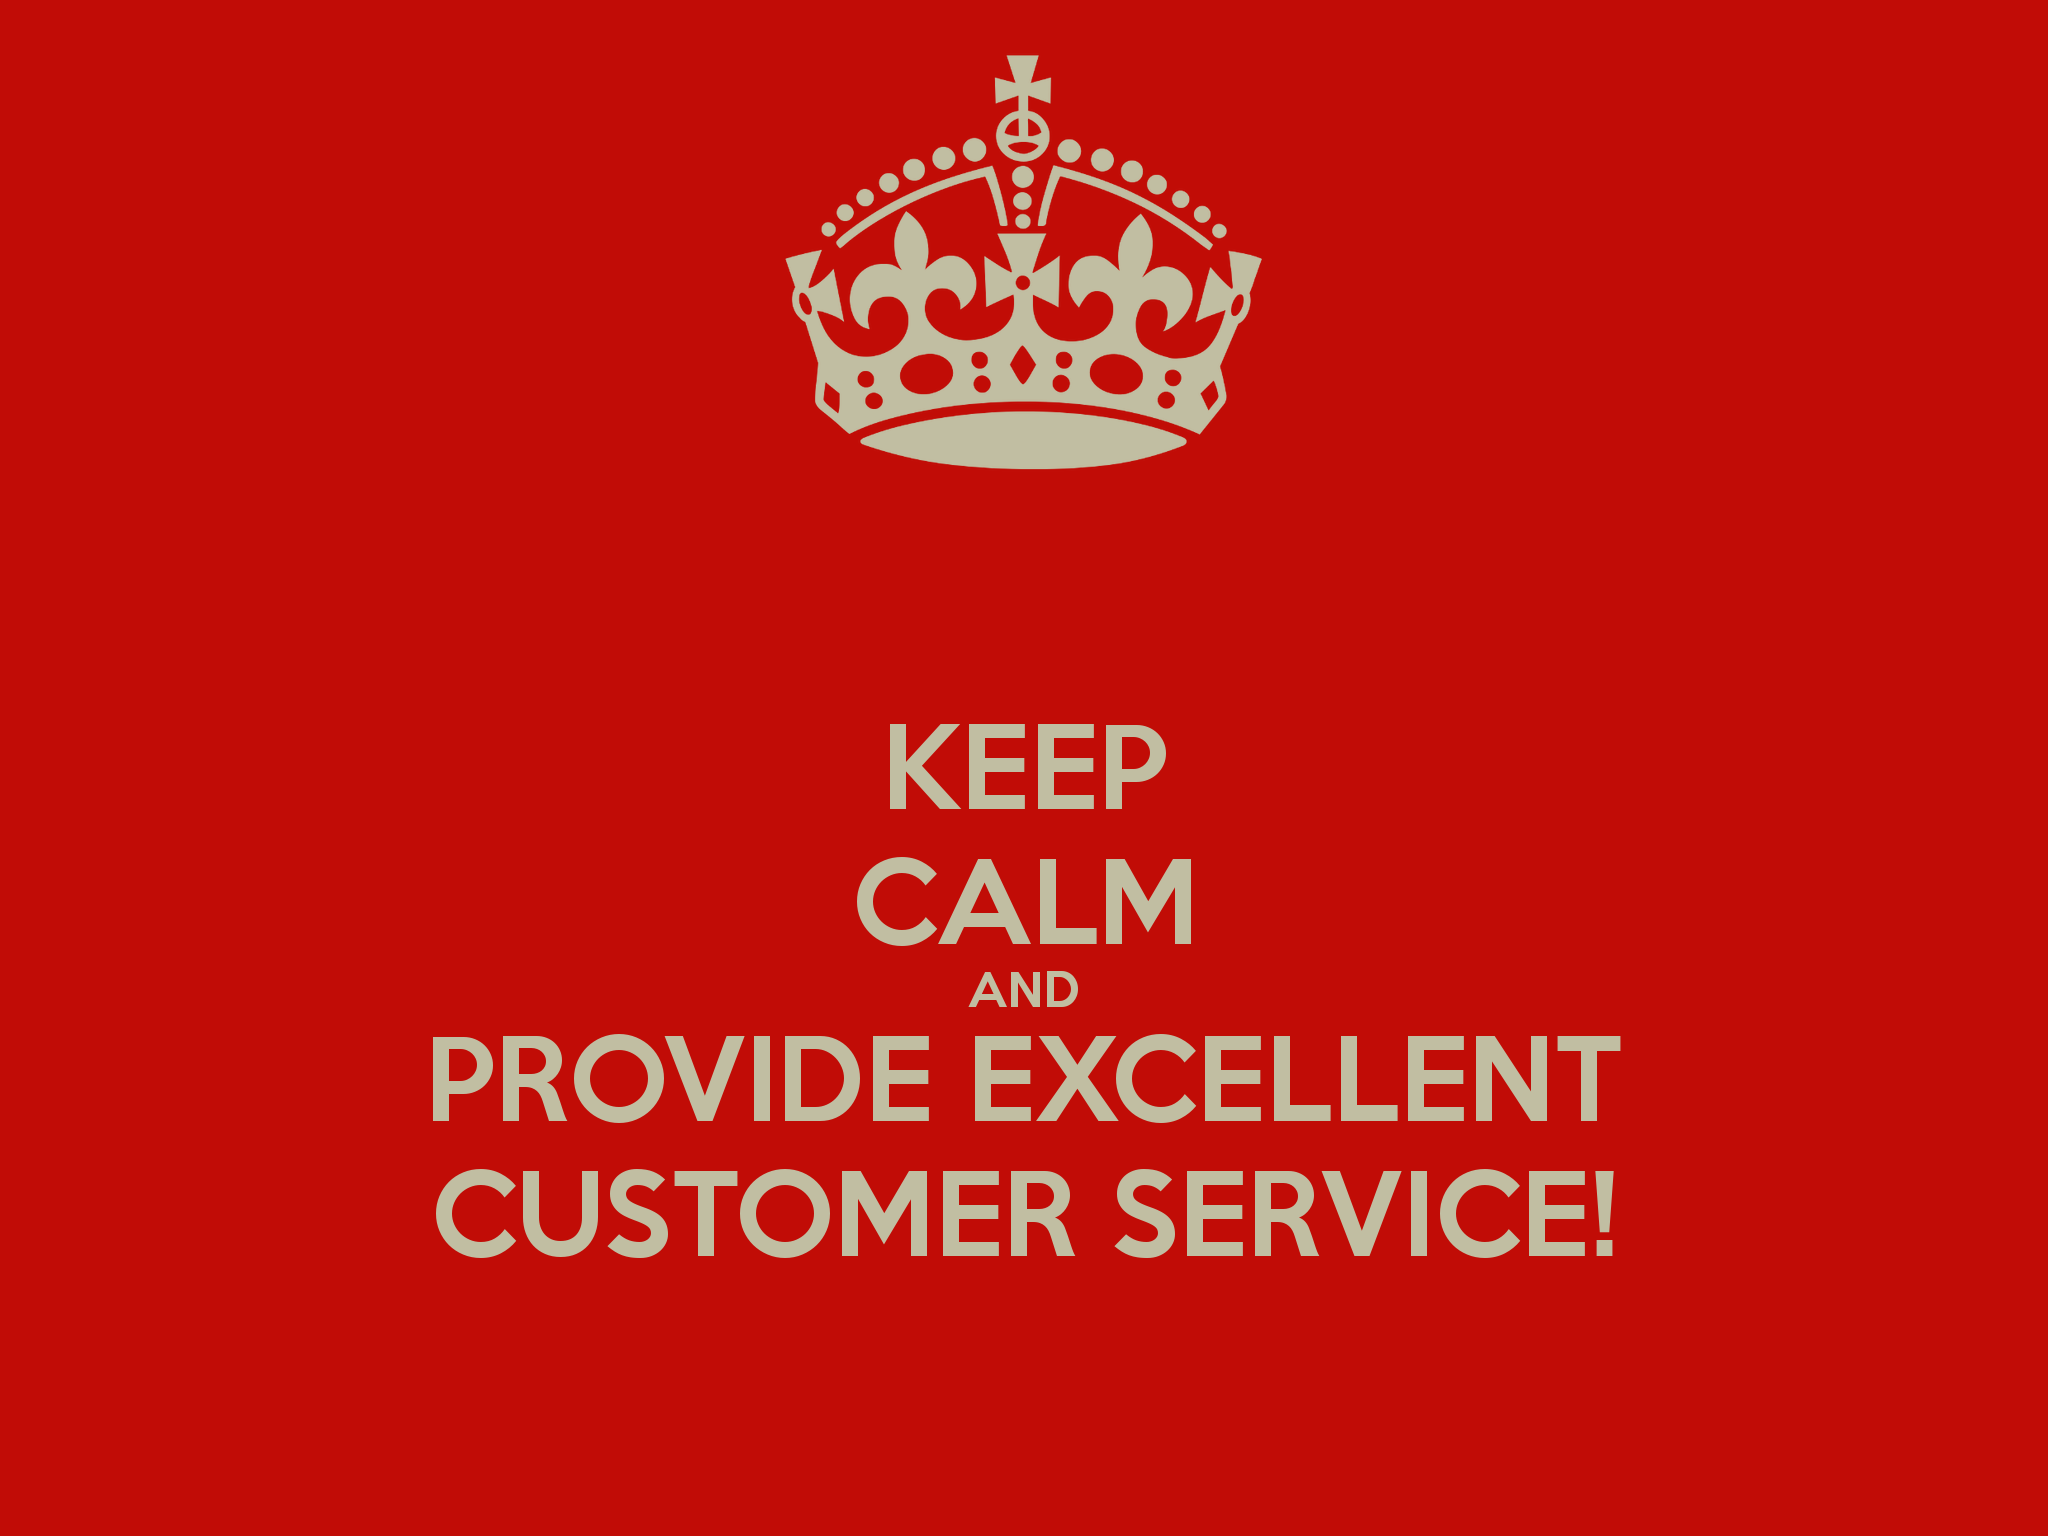 Customer Service Wallpaper